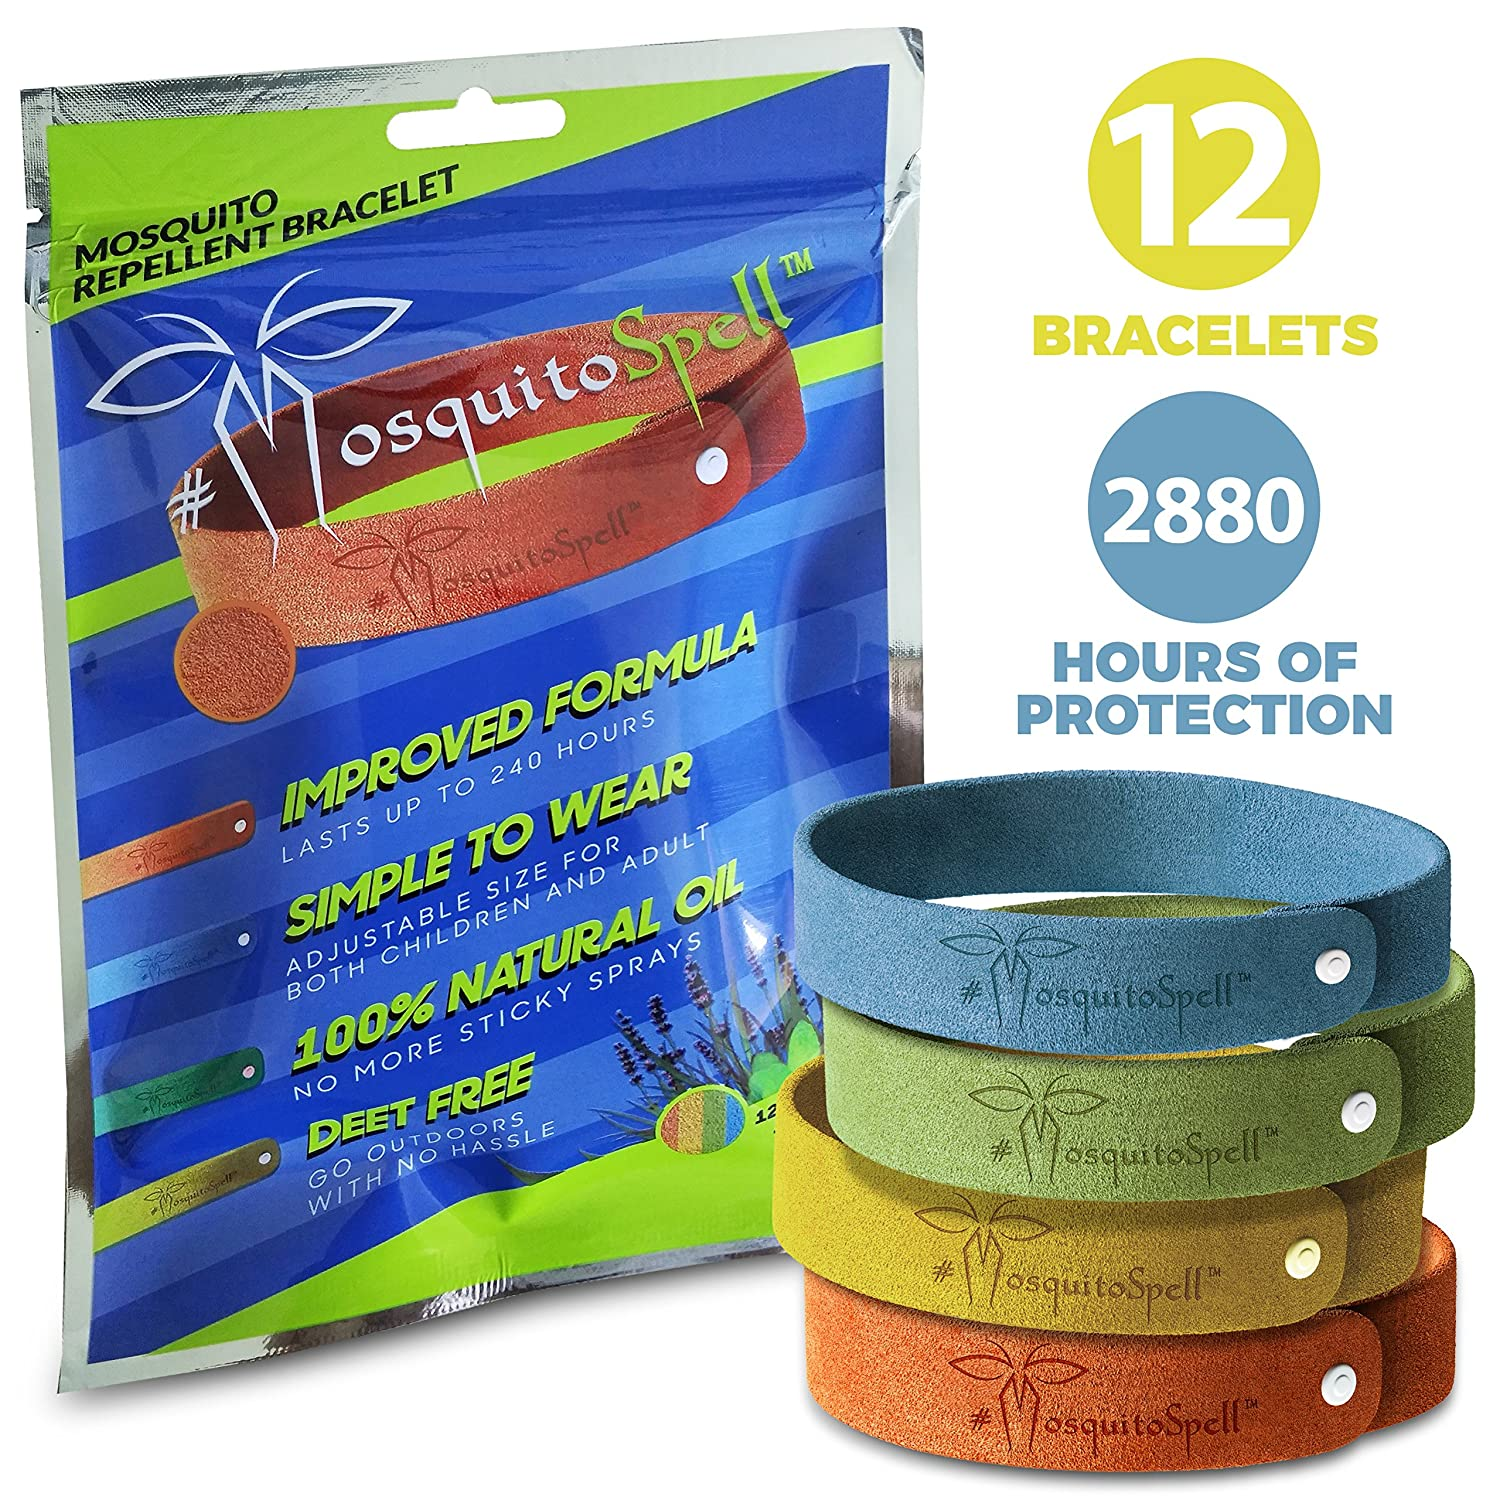 Amazoncom Mosquito Repellent Bracelet 12Pcs, 100% All Natural Plant Based Oil,